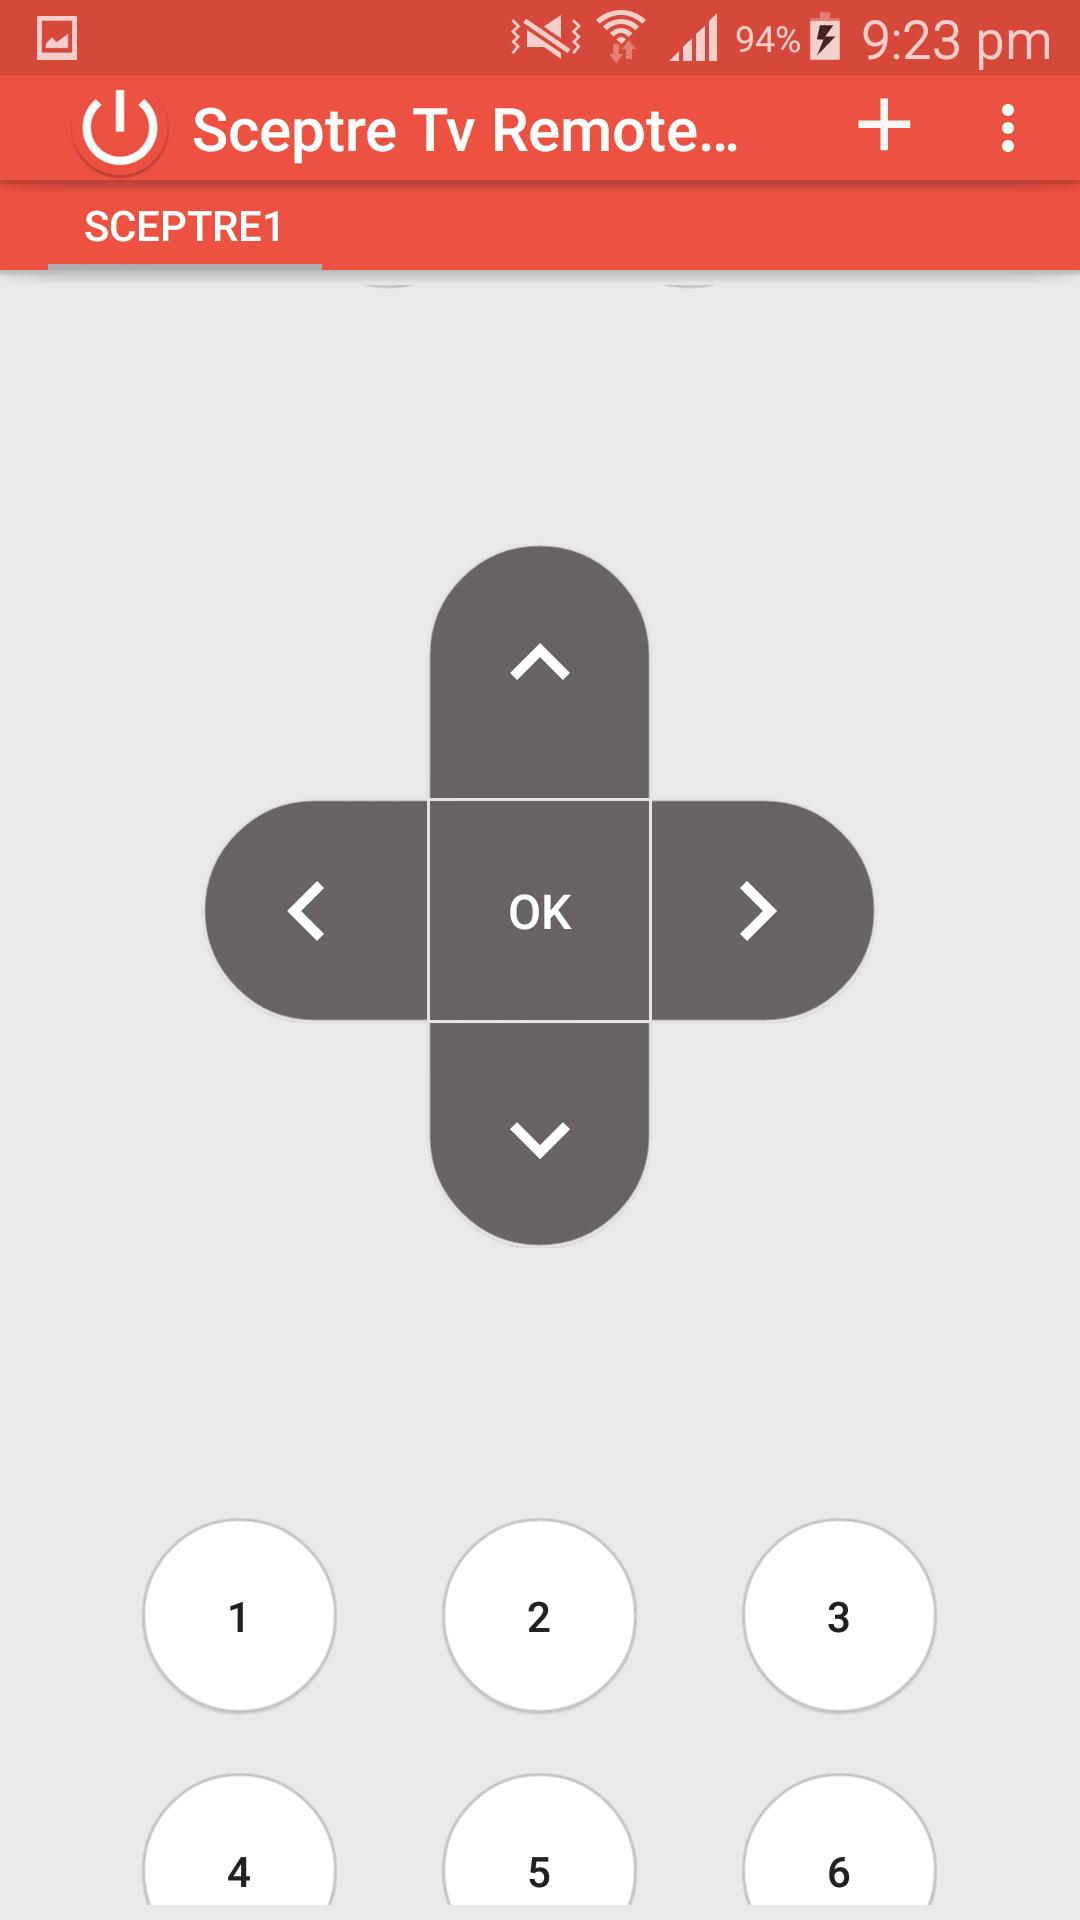 Sceptre Tv Remote Control for Android - APK Download